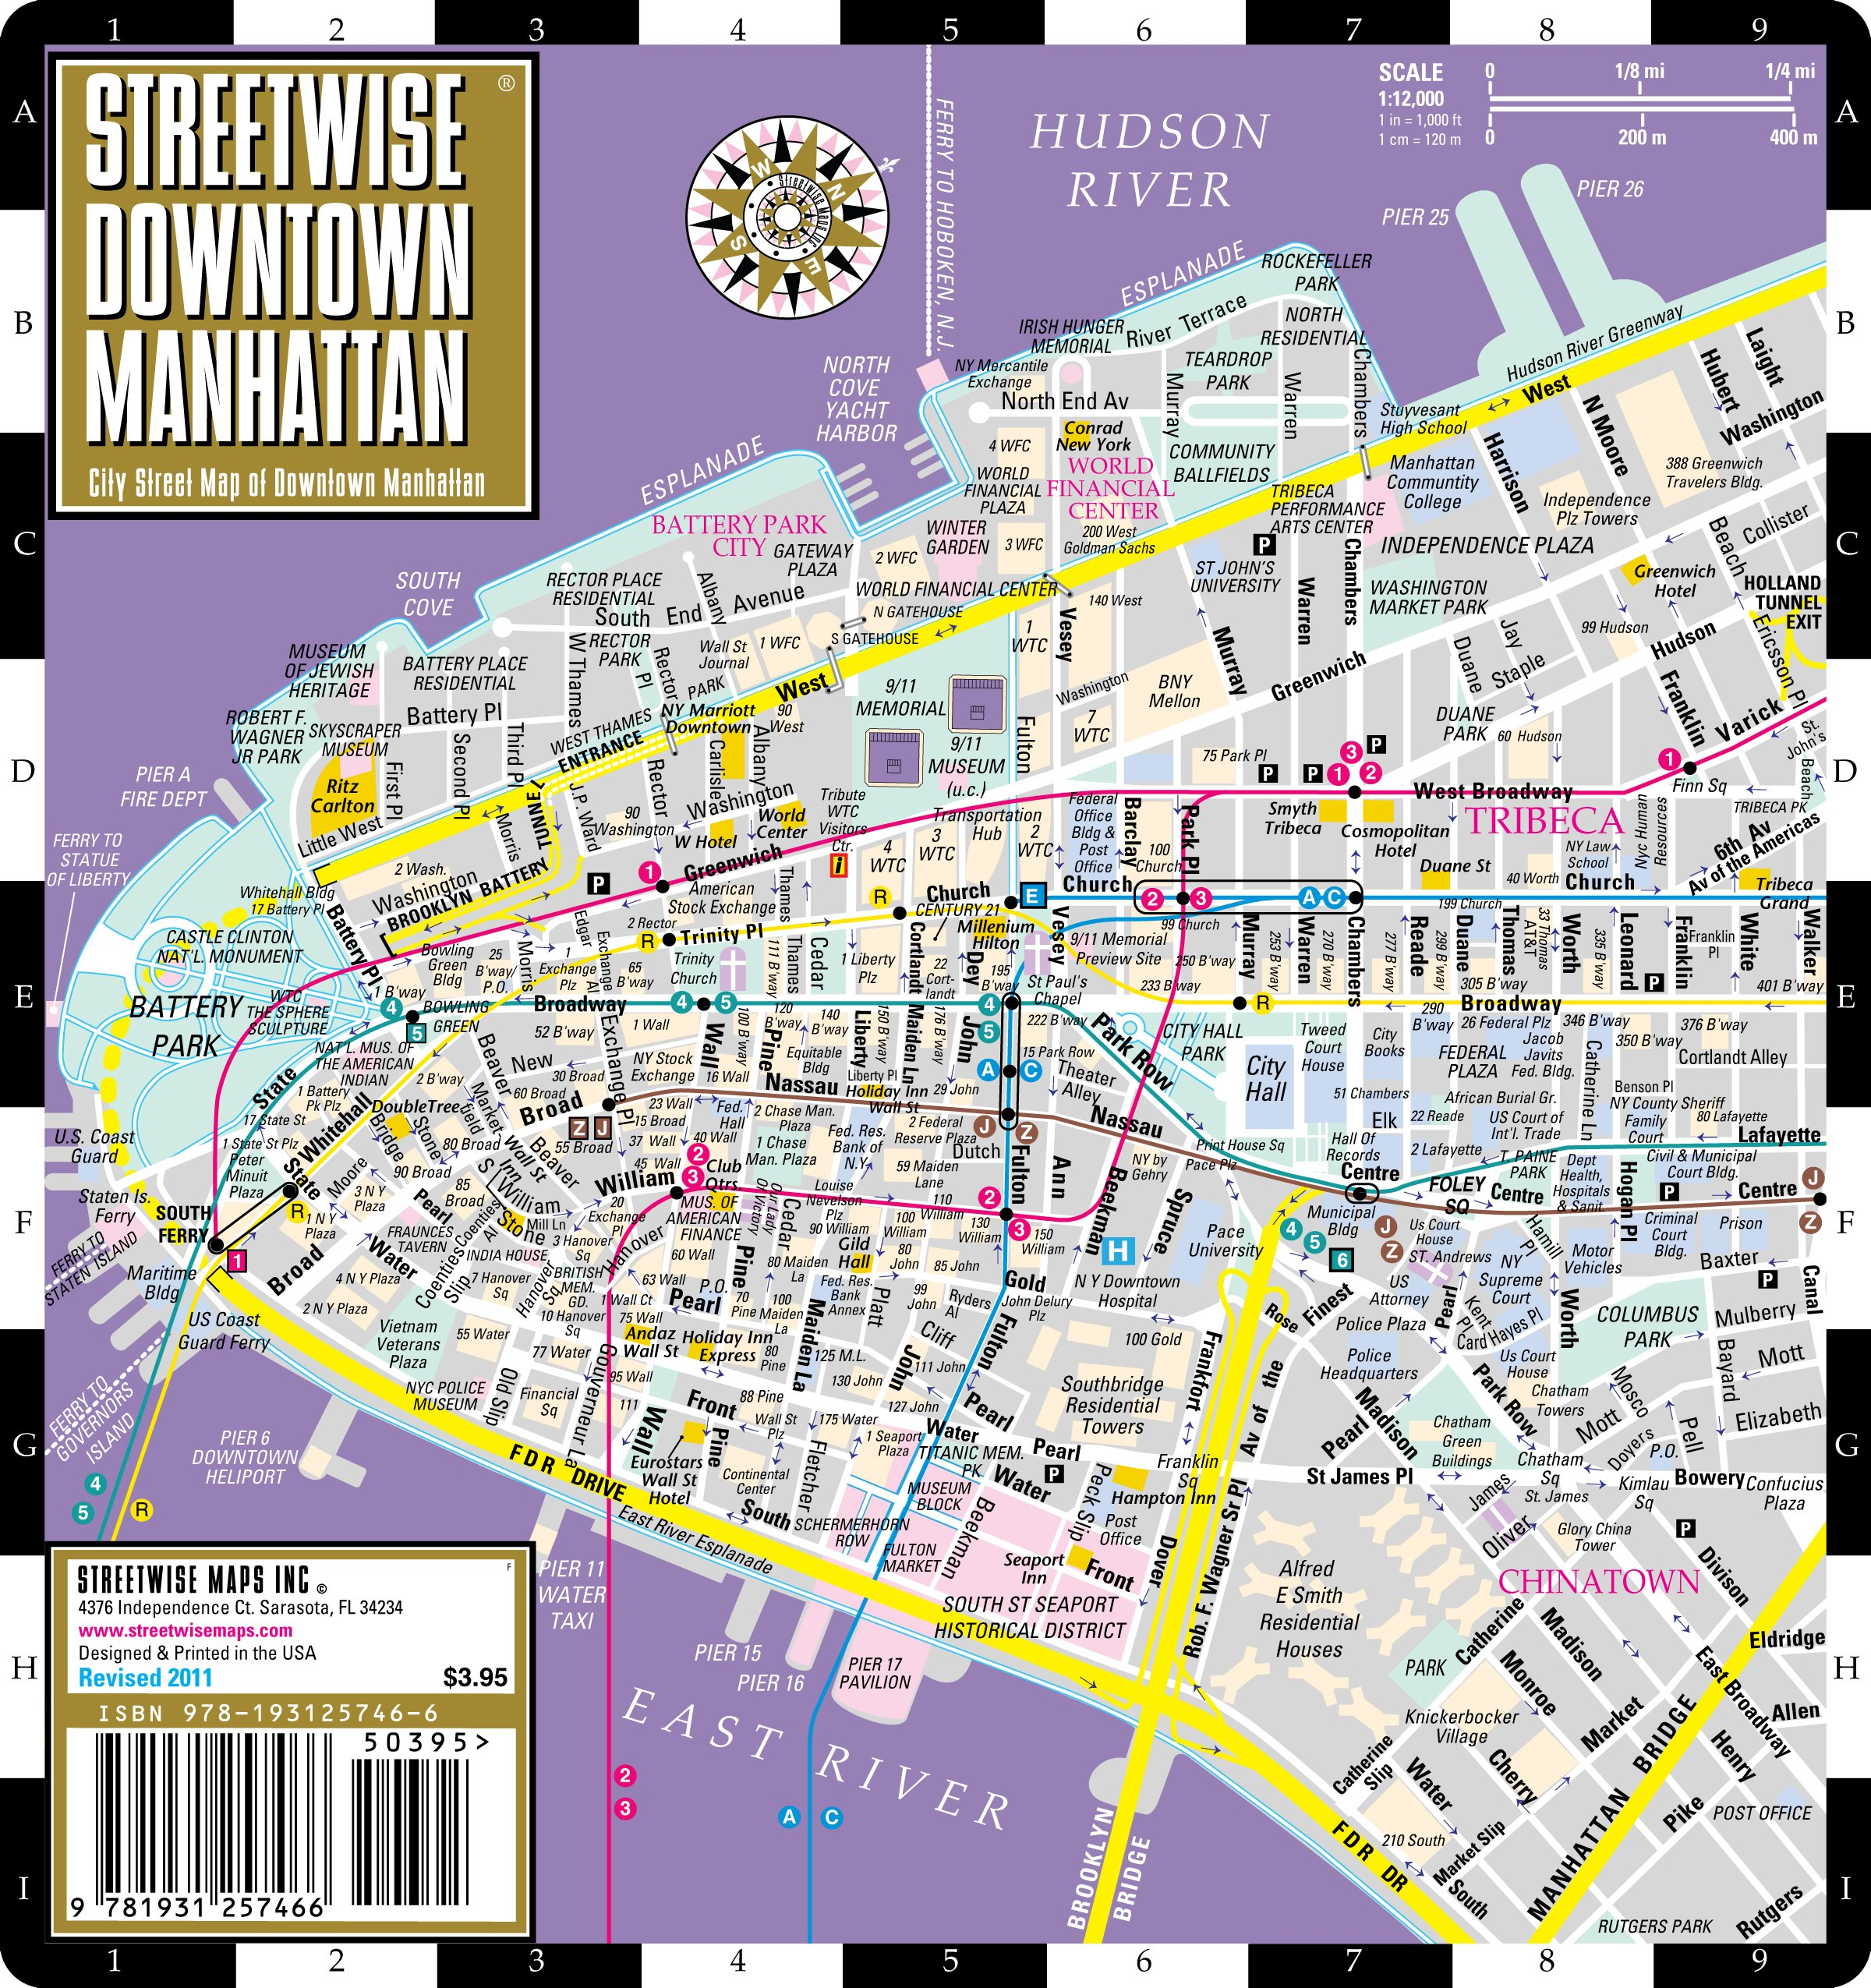 Streetwise Downtown Manhattan Map - Laminated Street Map of ... on manhattan avenues and streets, manhattan nd map, world trade center on a map, 1920s manhattan map, midtown manhattan map, manhattan street map, manhattan island, manhattan south map, manhattan los angeles map, manhattan hotel map, manhattan tx map, manhattan new york subway, manhattan rooftop bars in december, lower manhattan map, manhattan nebraska map, manhattan yonkers map, nyc map, manhattan on us map, manhattan tourist map, new city street map,